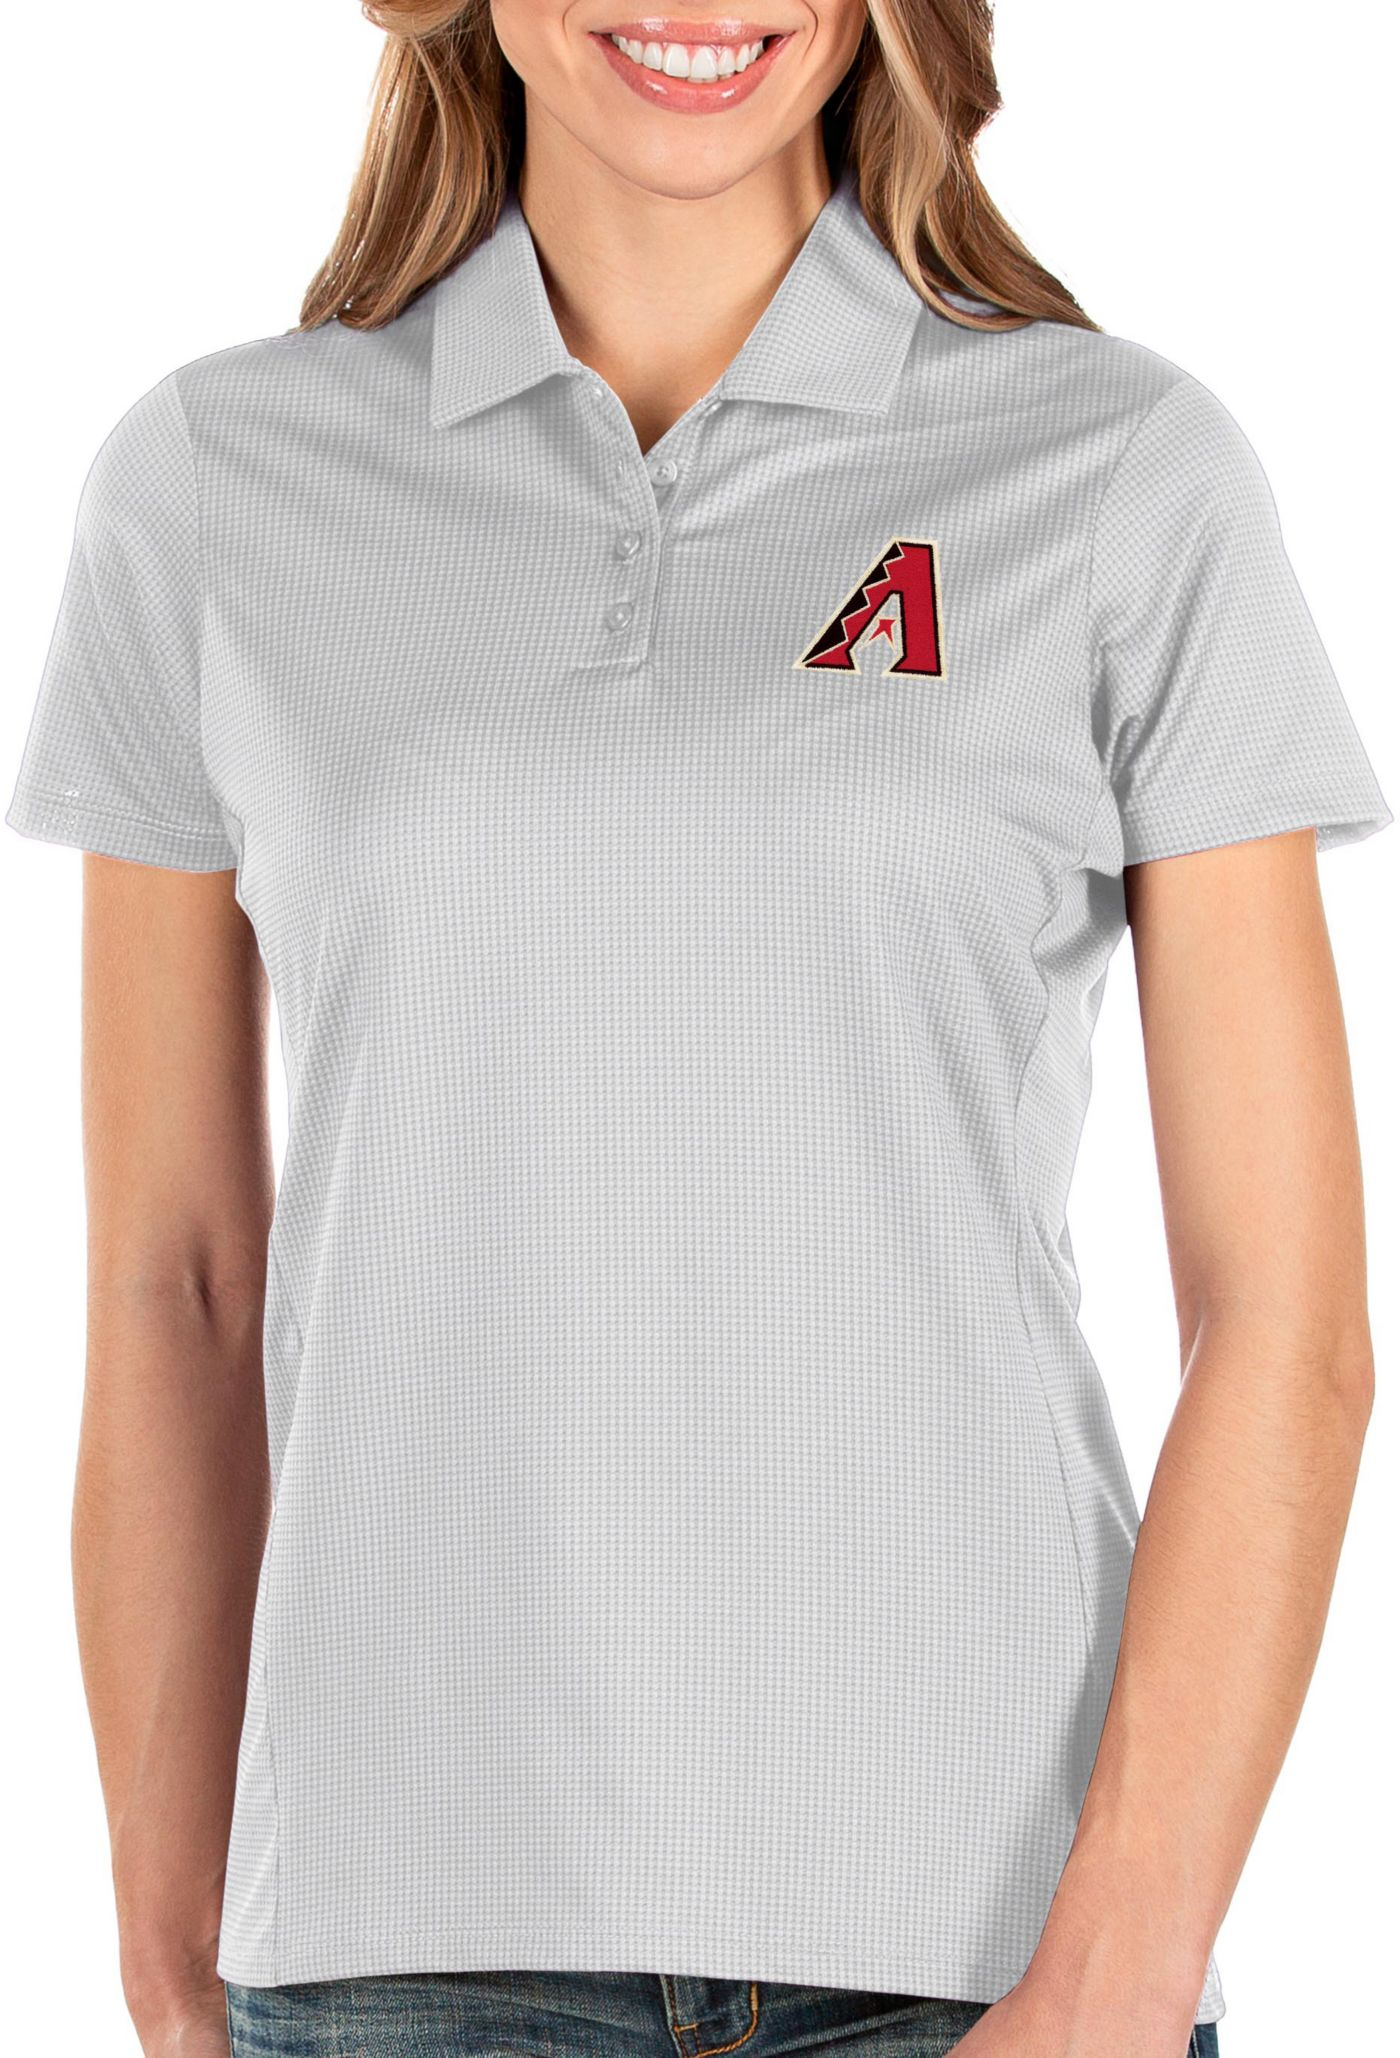 Antigua Women's Arizona Diamondbacks White Balance Polo